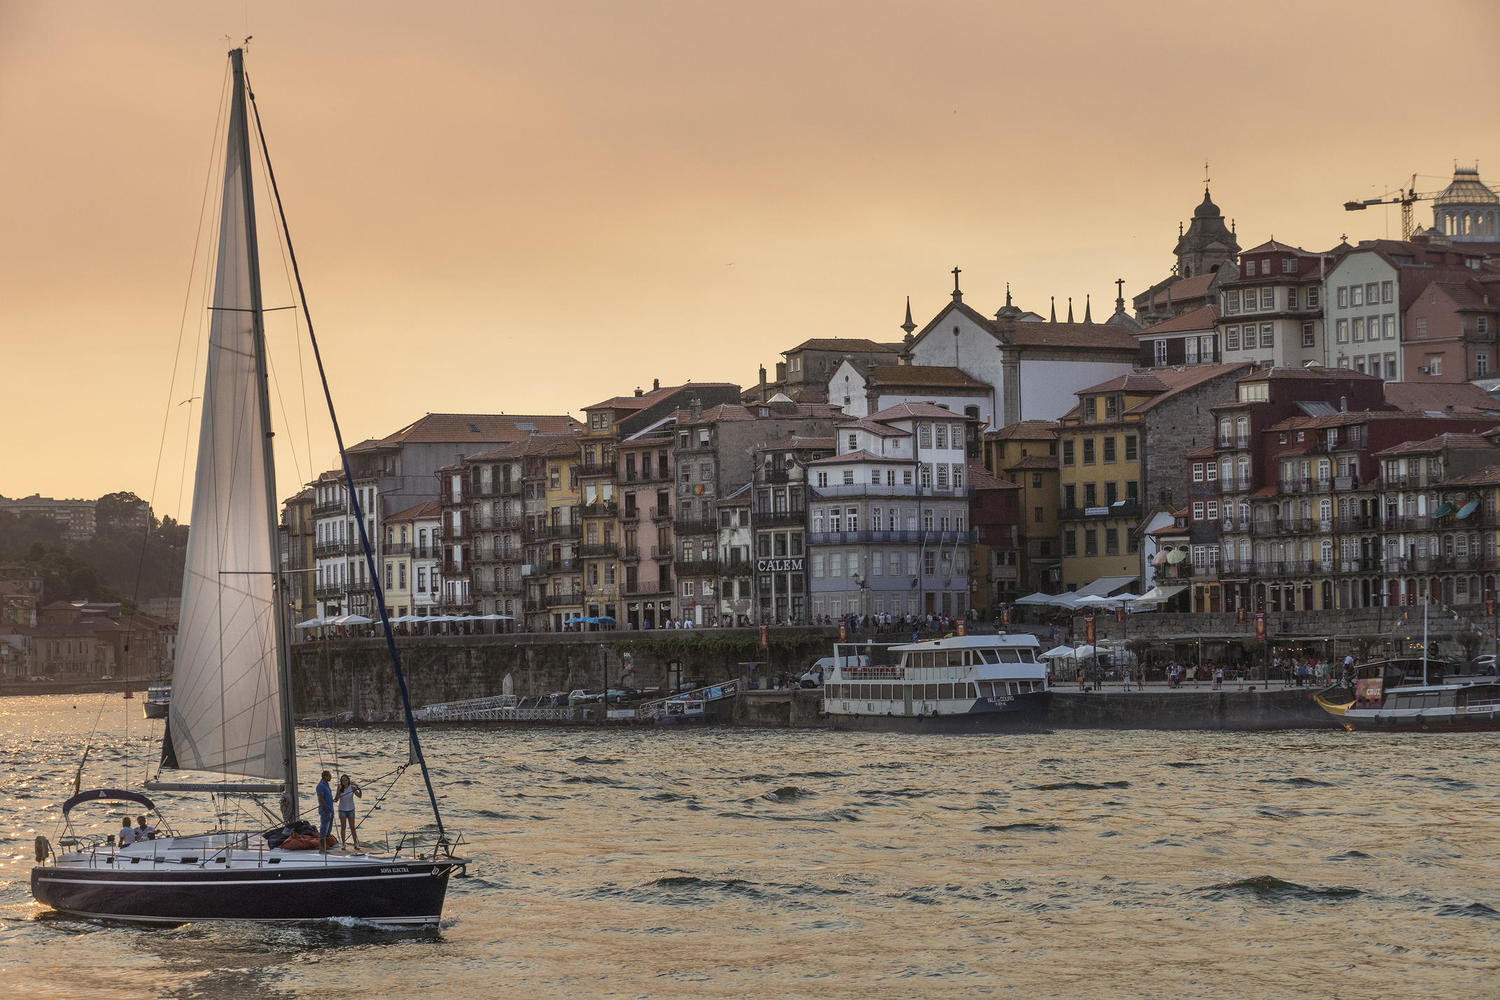 A rabelo sailing at sunset on the Douro in Porto